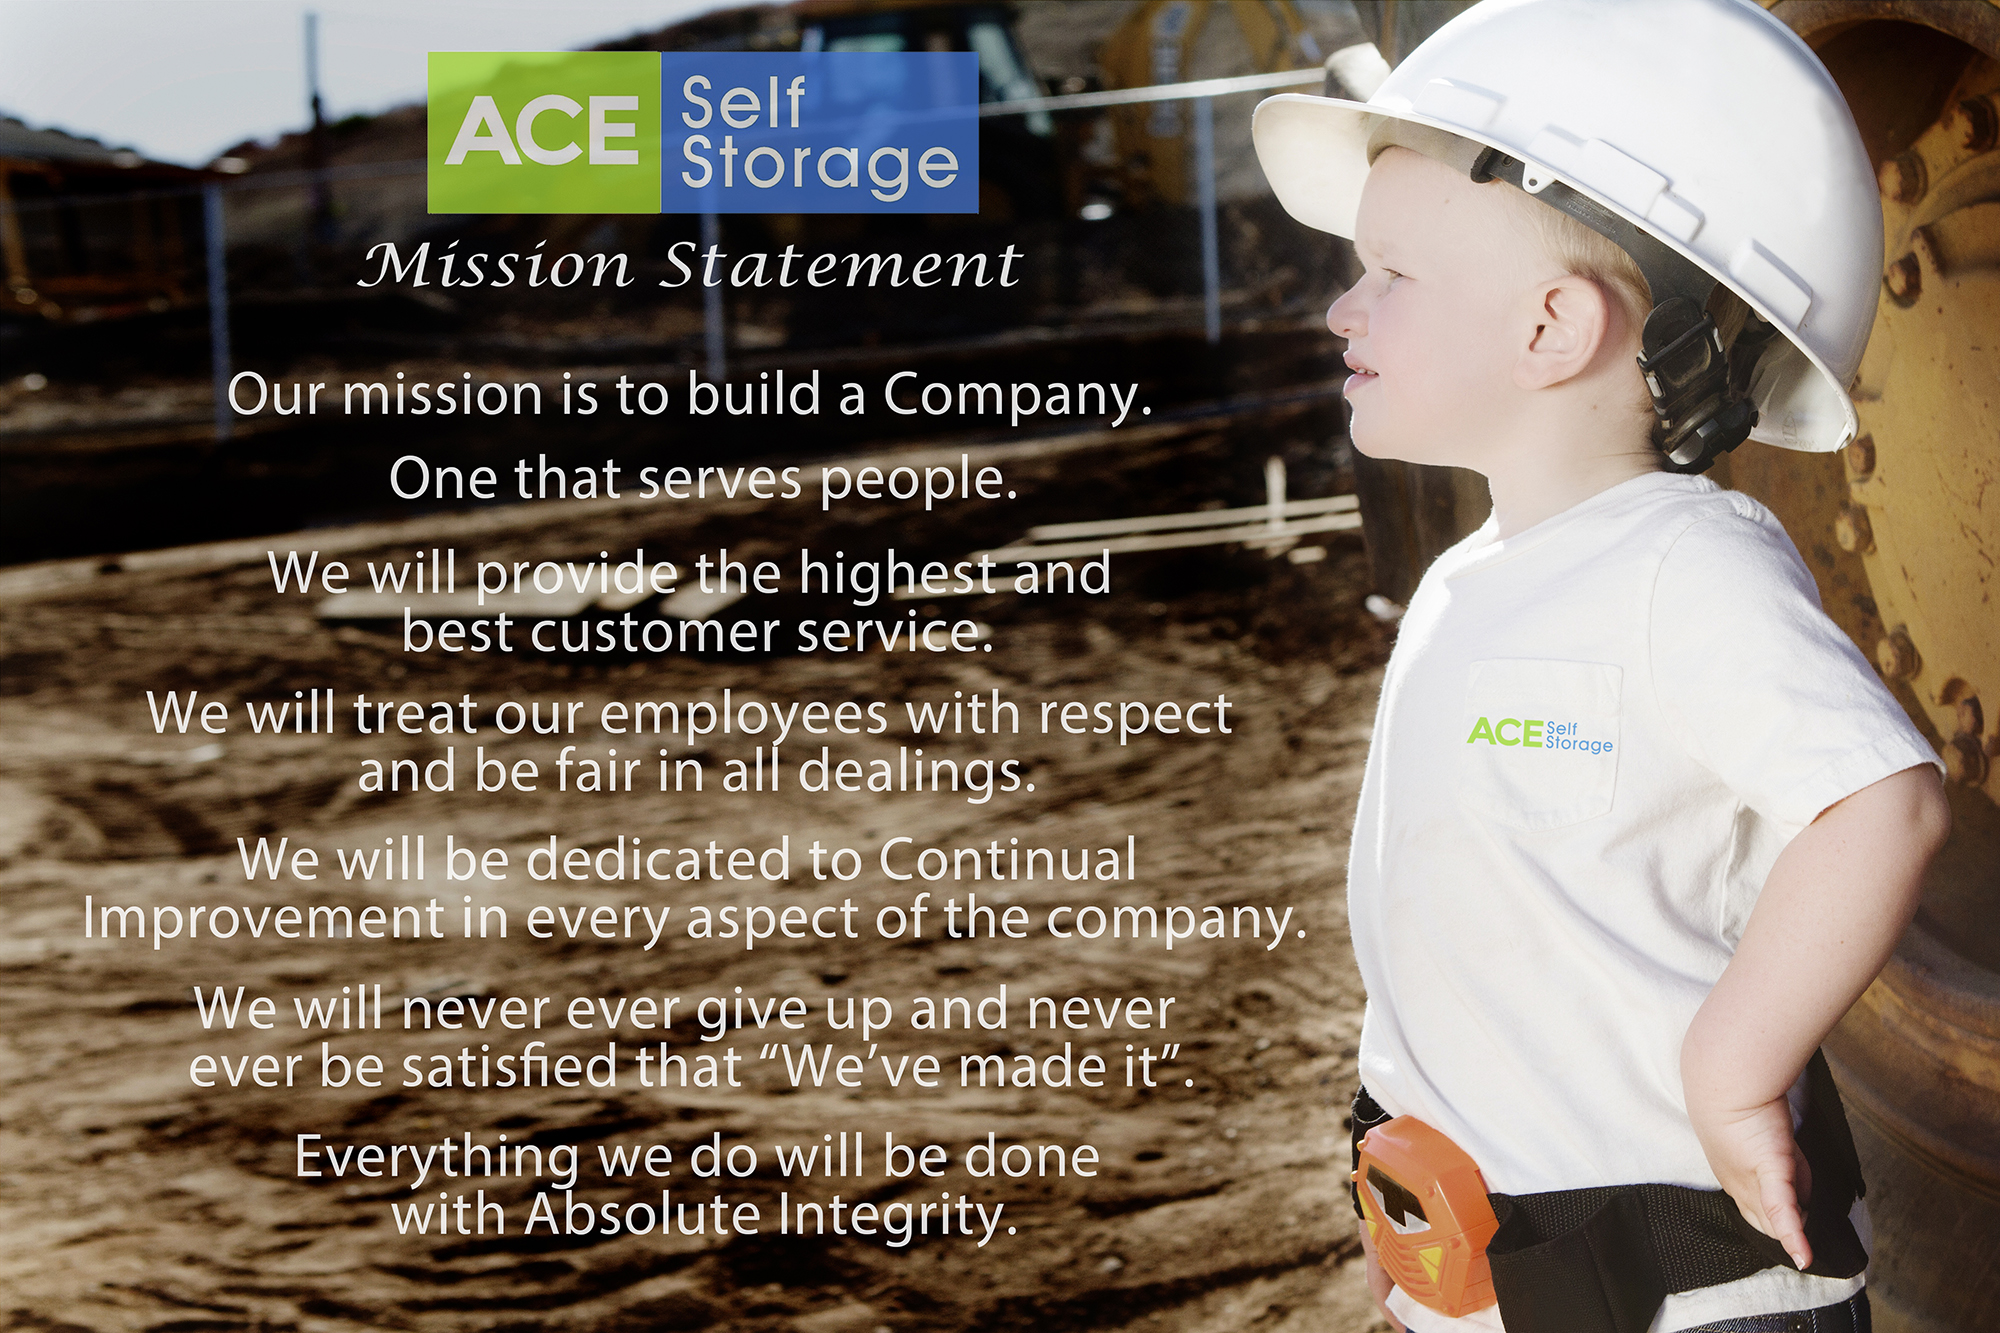 Ace Self Storage Mission Statement